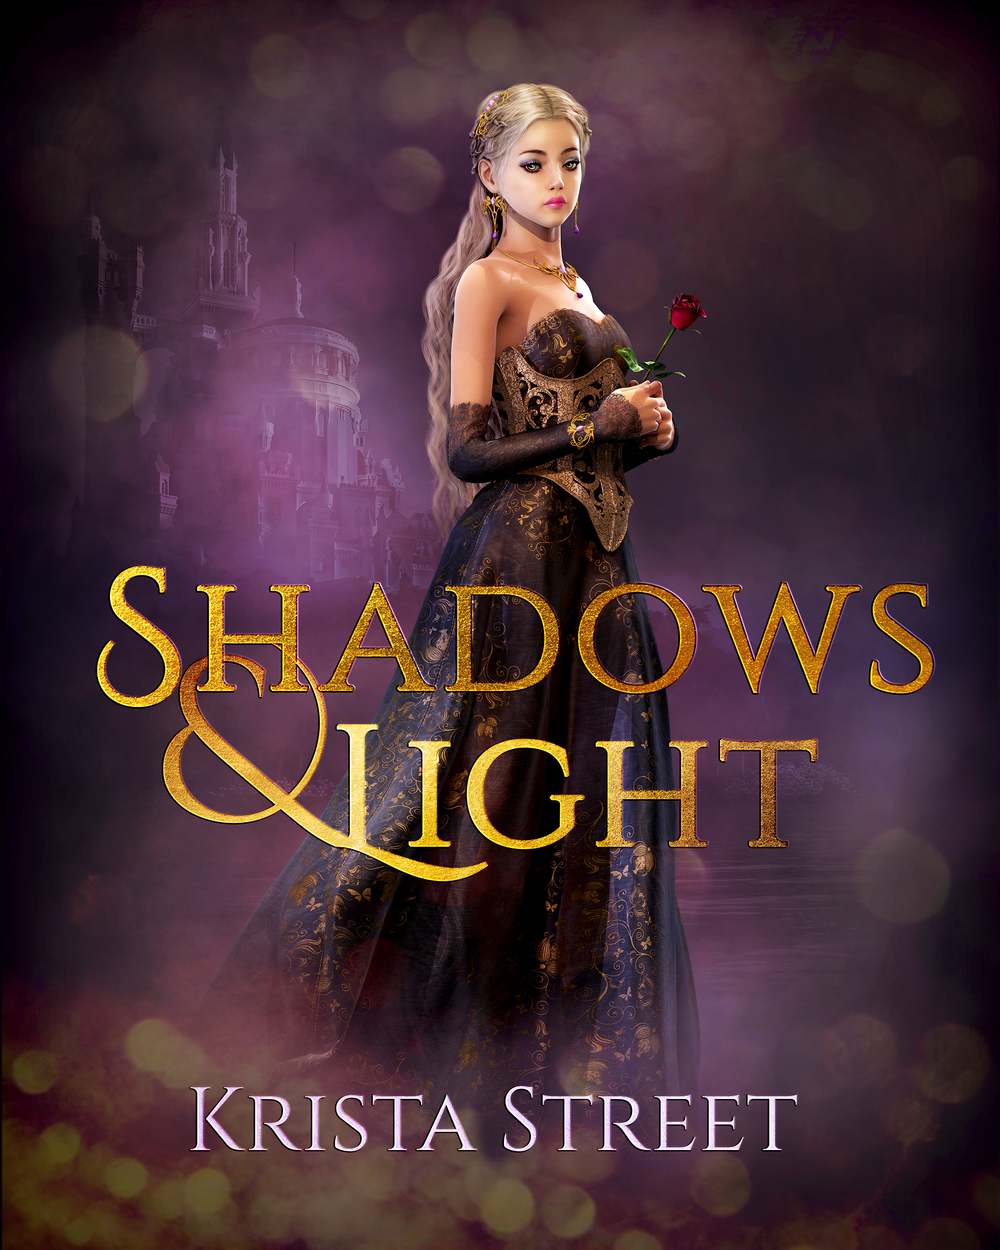 SHADOWS & LIGHT   Krista Street      Being a supernatural healer isn't easy, especially when a stalker wants you burned at the stake.  Fortunately, Daria Gresham's new bodyguard is the sexiest man she's ever met, but he has a secret that could shatter her entire world.